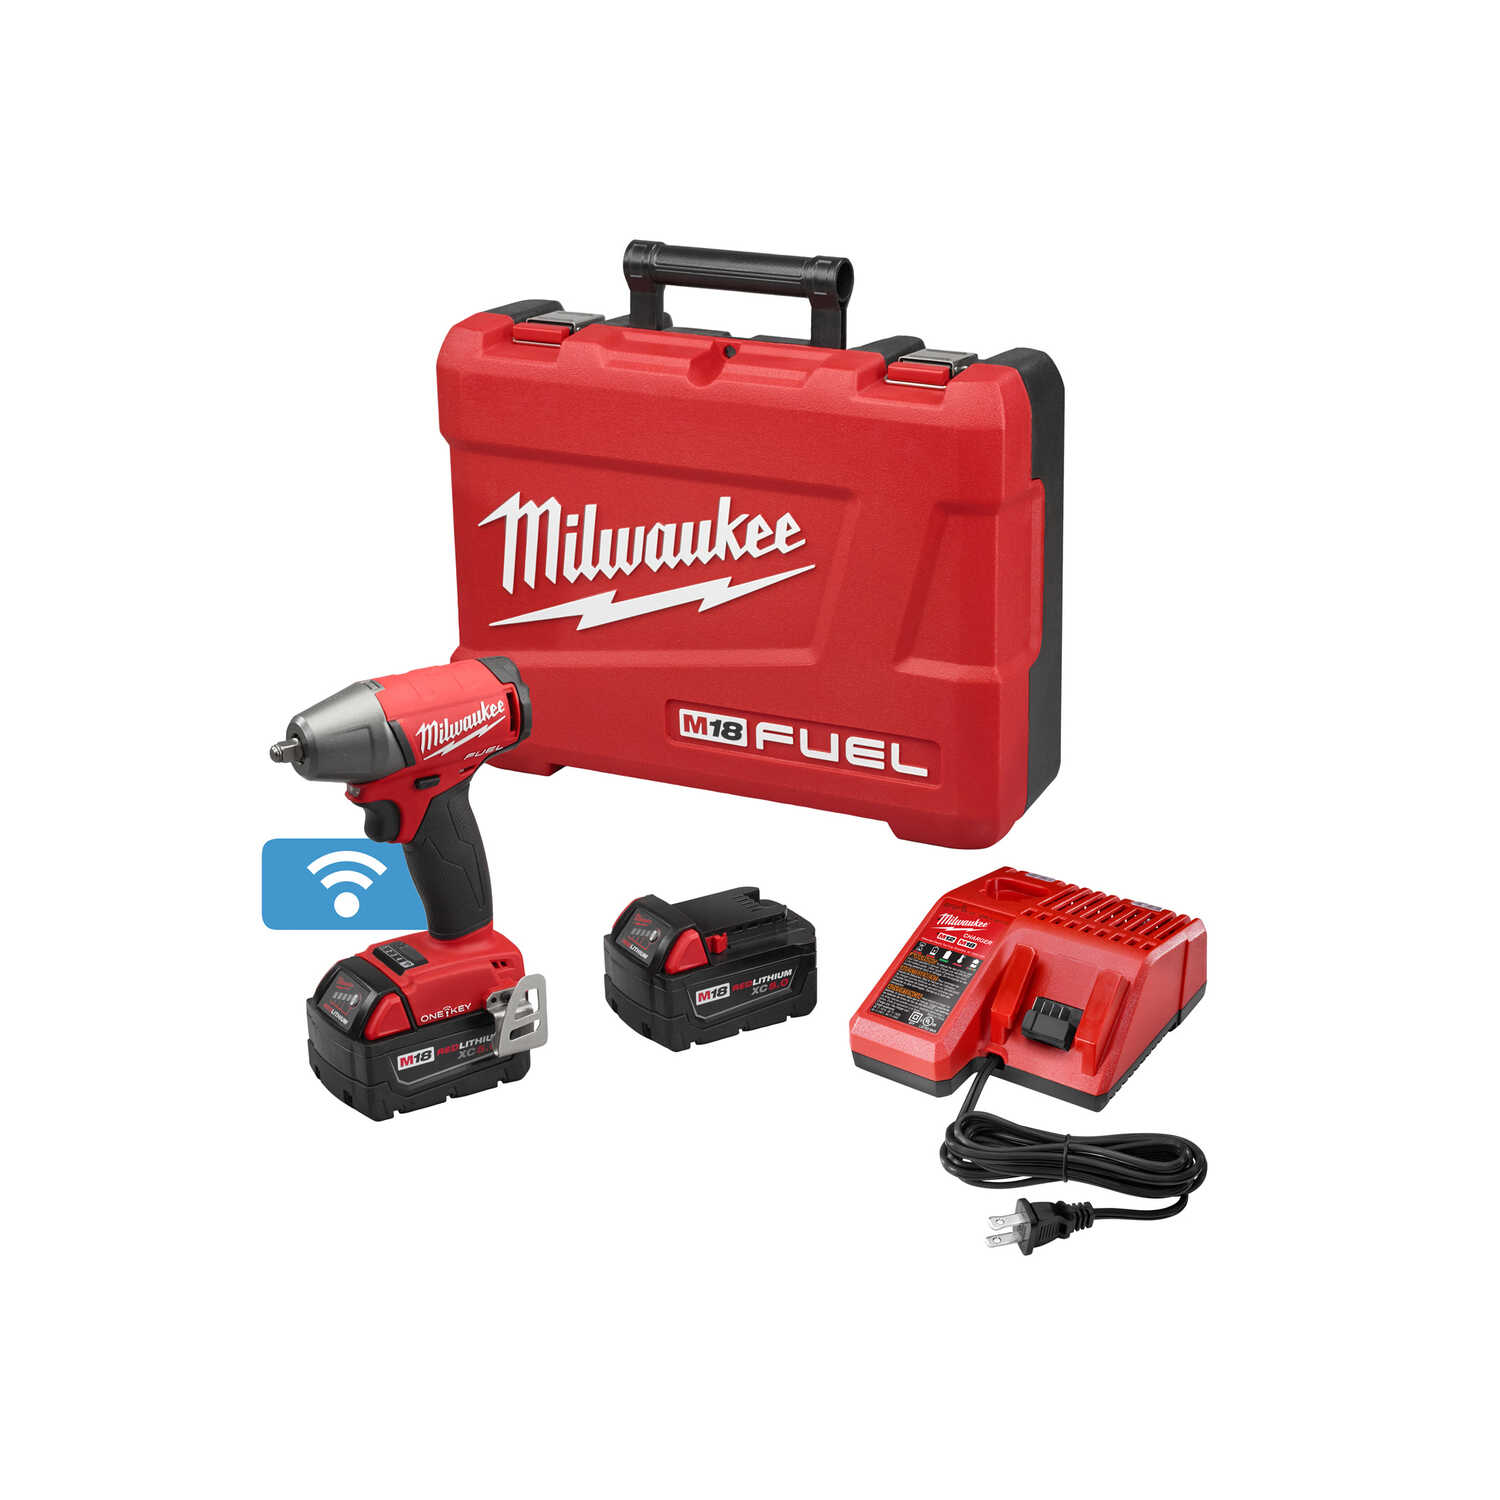 Milwaukee  M18 Fuel  3/8 in. Square  Cordless  Brushless Impact Wrench with Friction Ring  Kit 18 vo